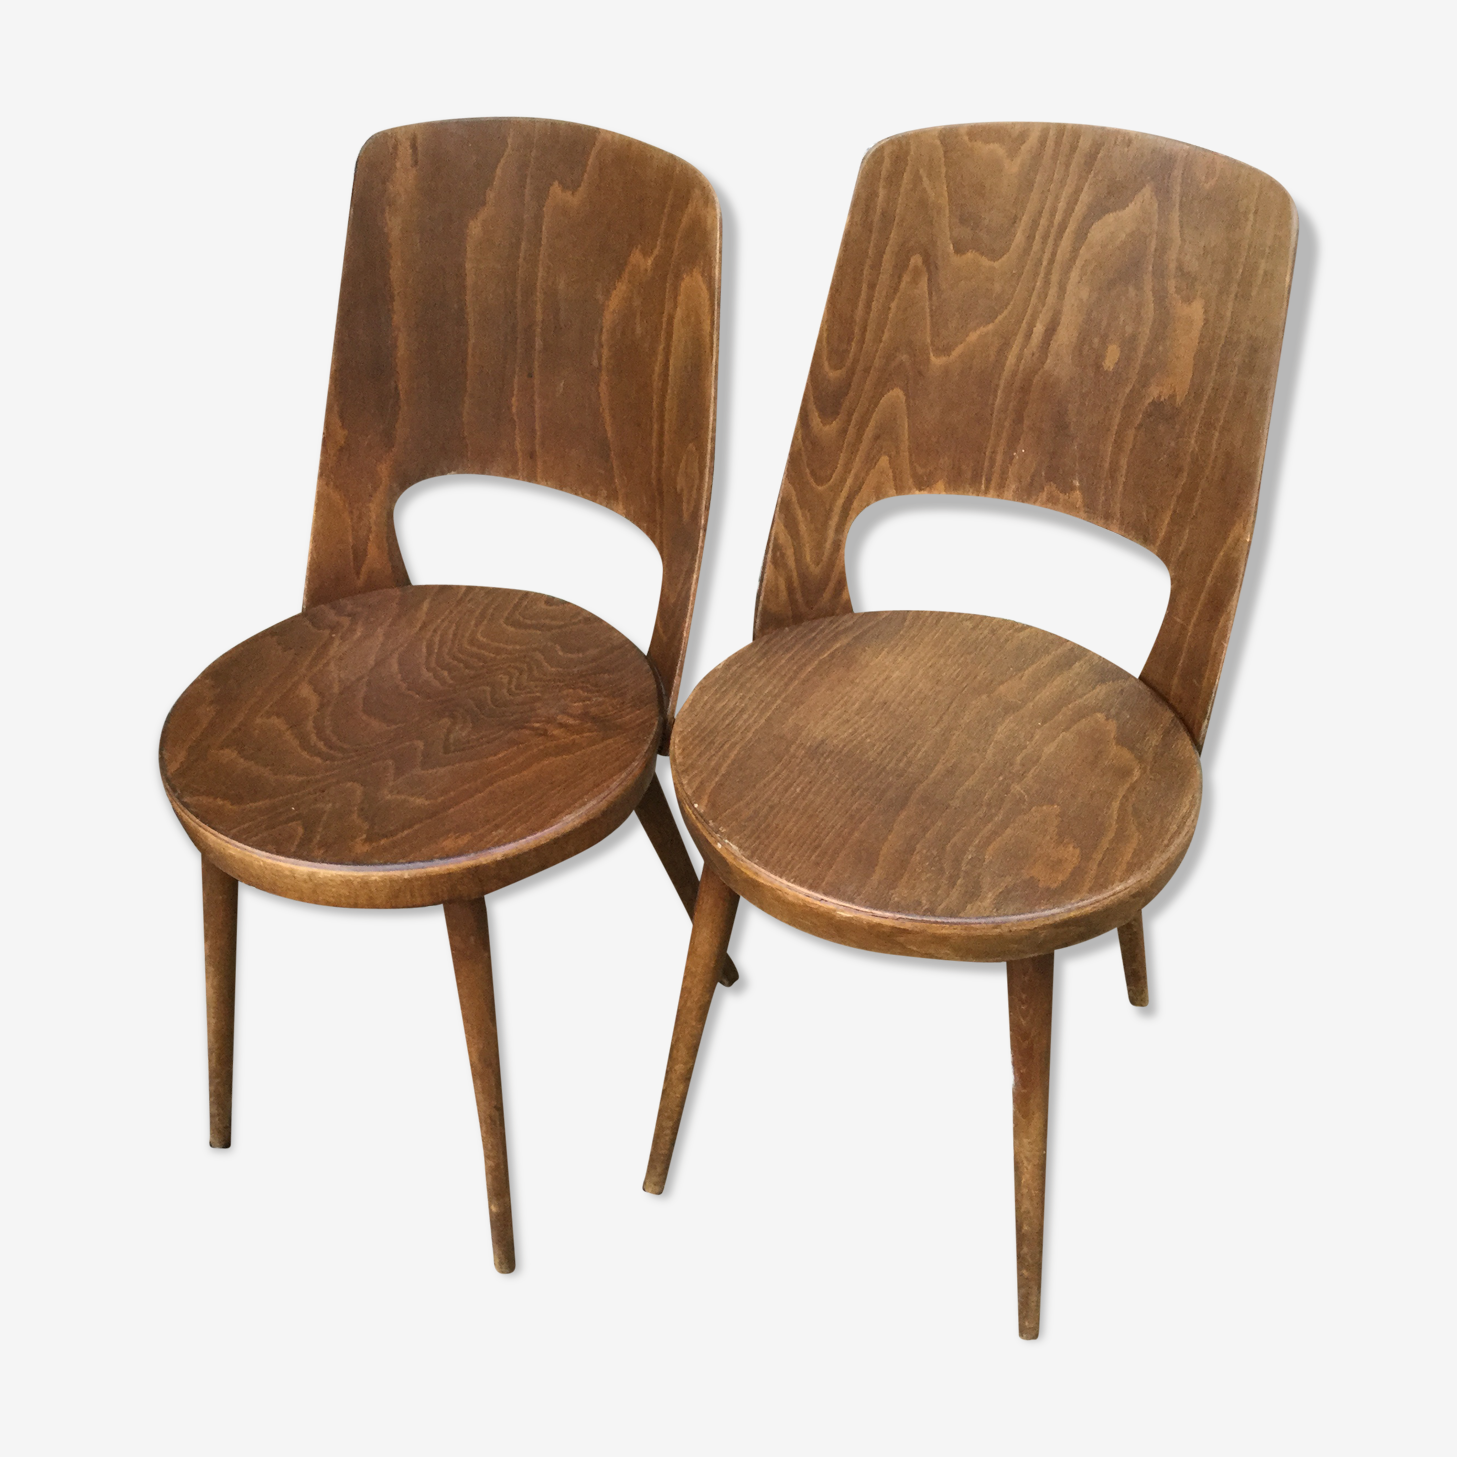 Pair of chairs Baumann Mondor